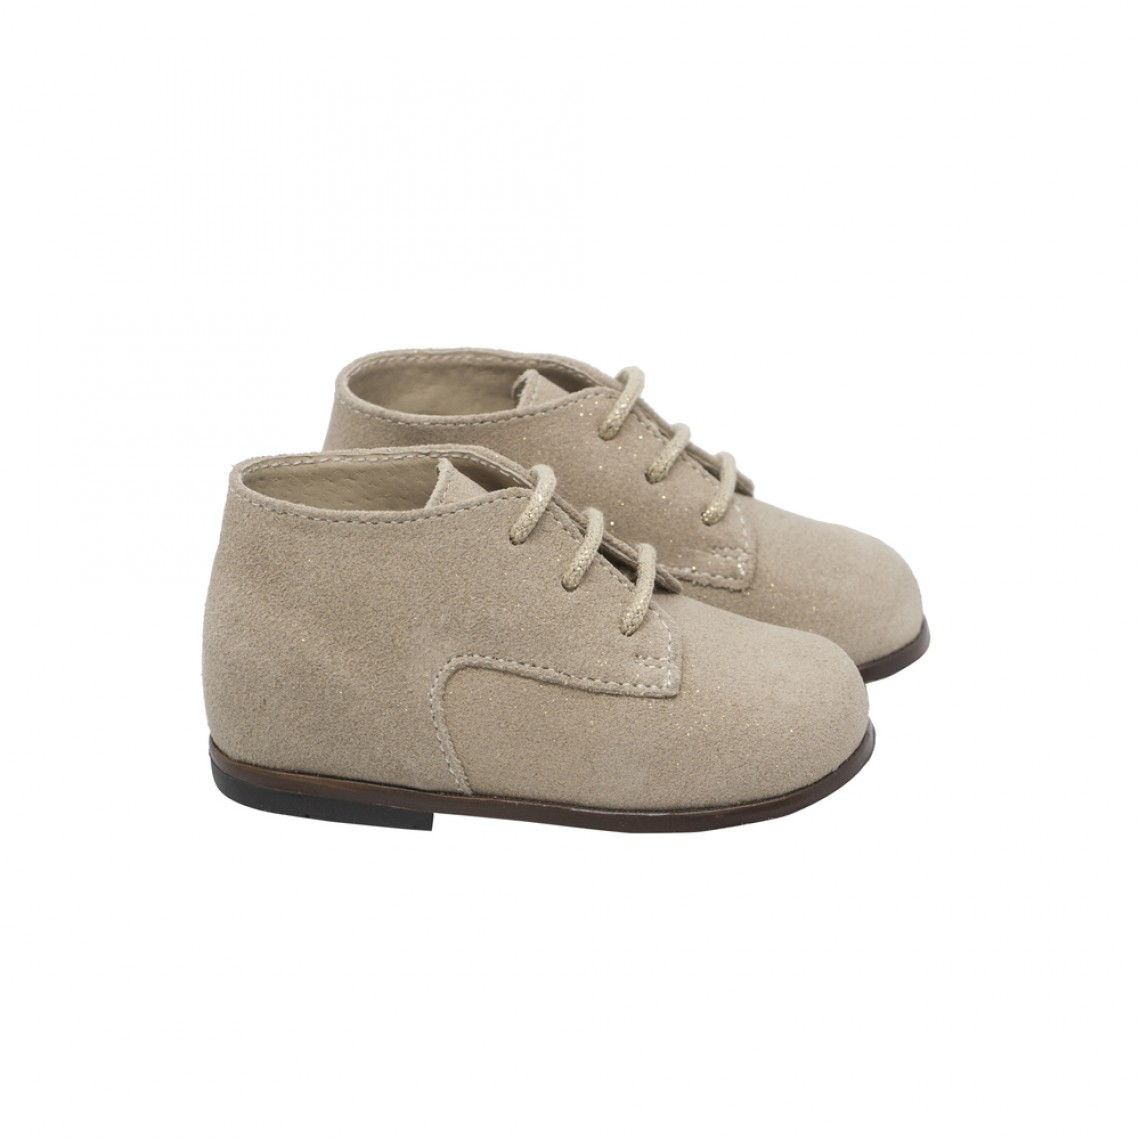 ring bearer shoes tan ankle boots